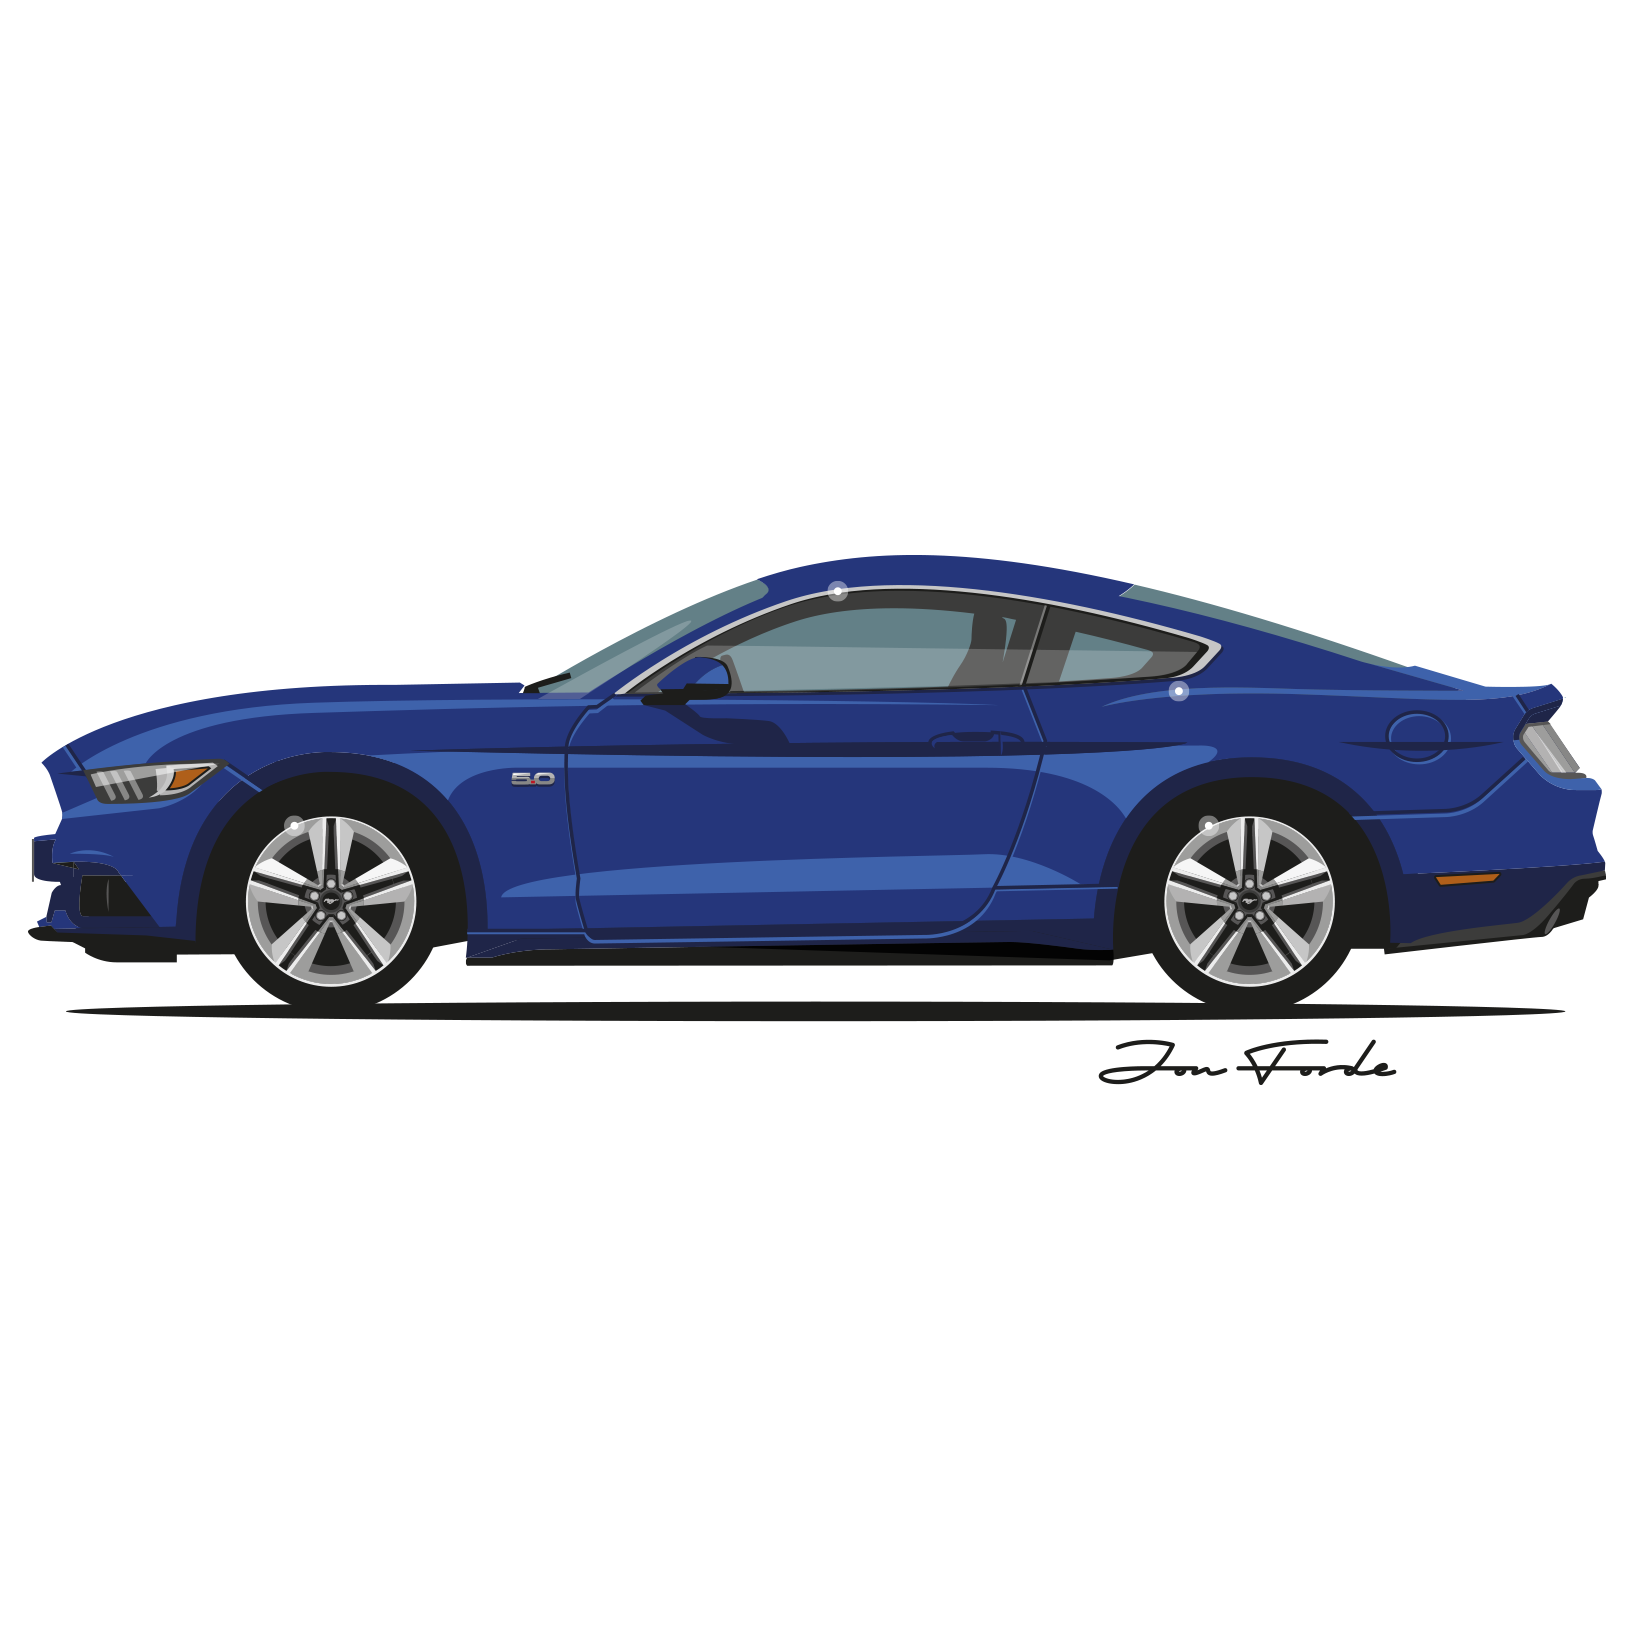 Muscle car clipart clipart freeuse download Ford Mustang GT PNG Clipart - Download free images in PNG clipart freeuse download